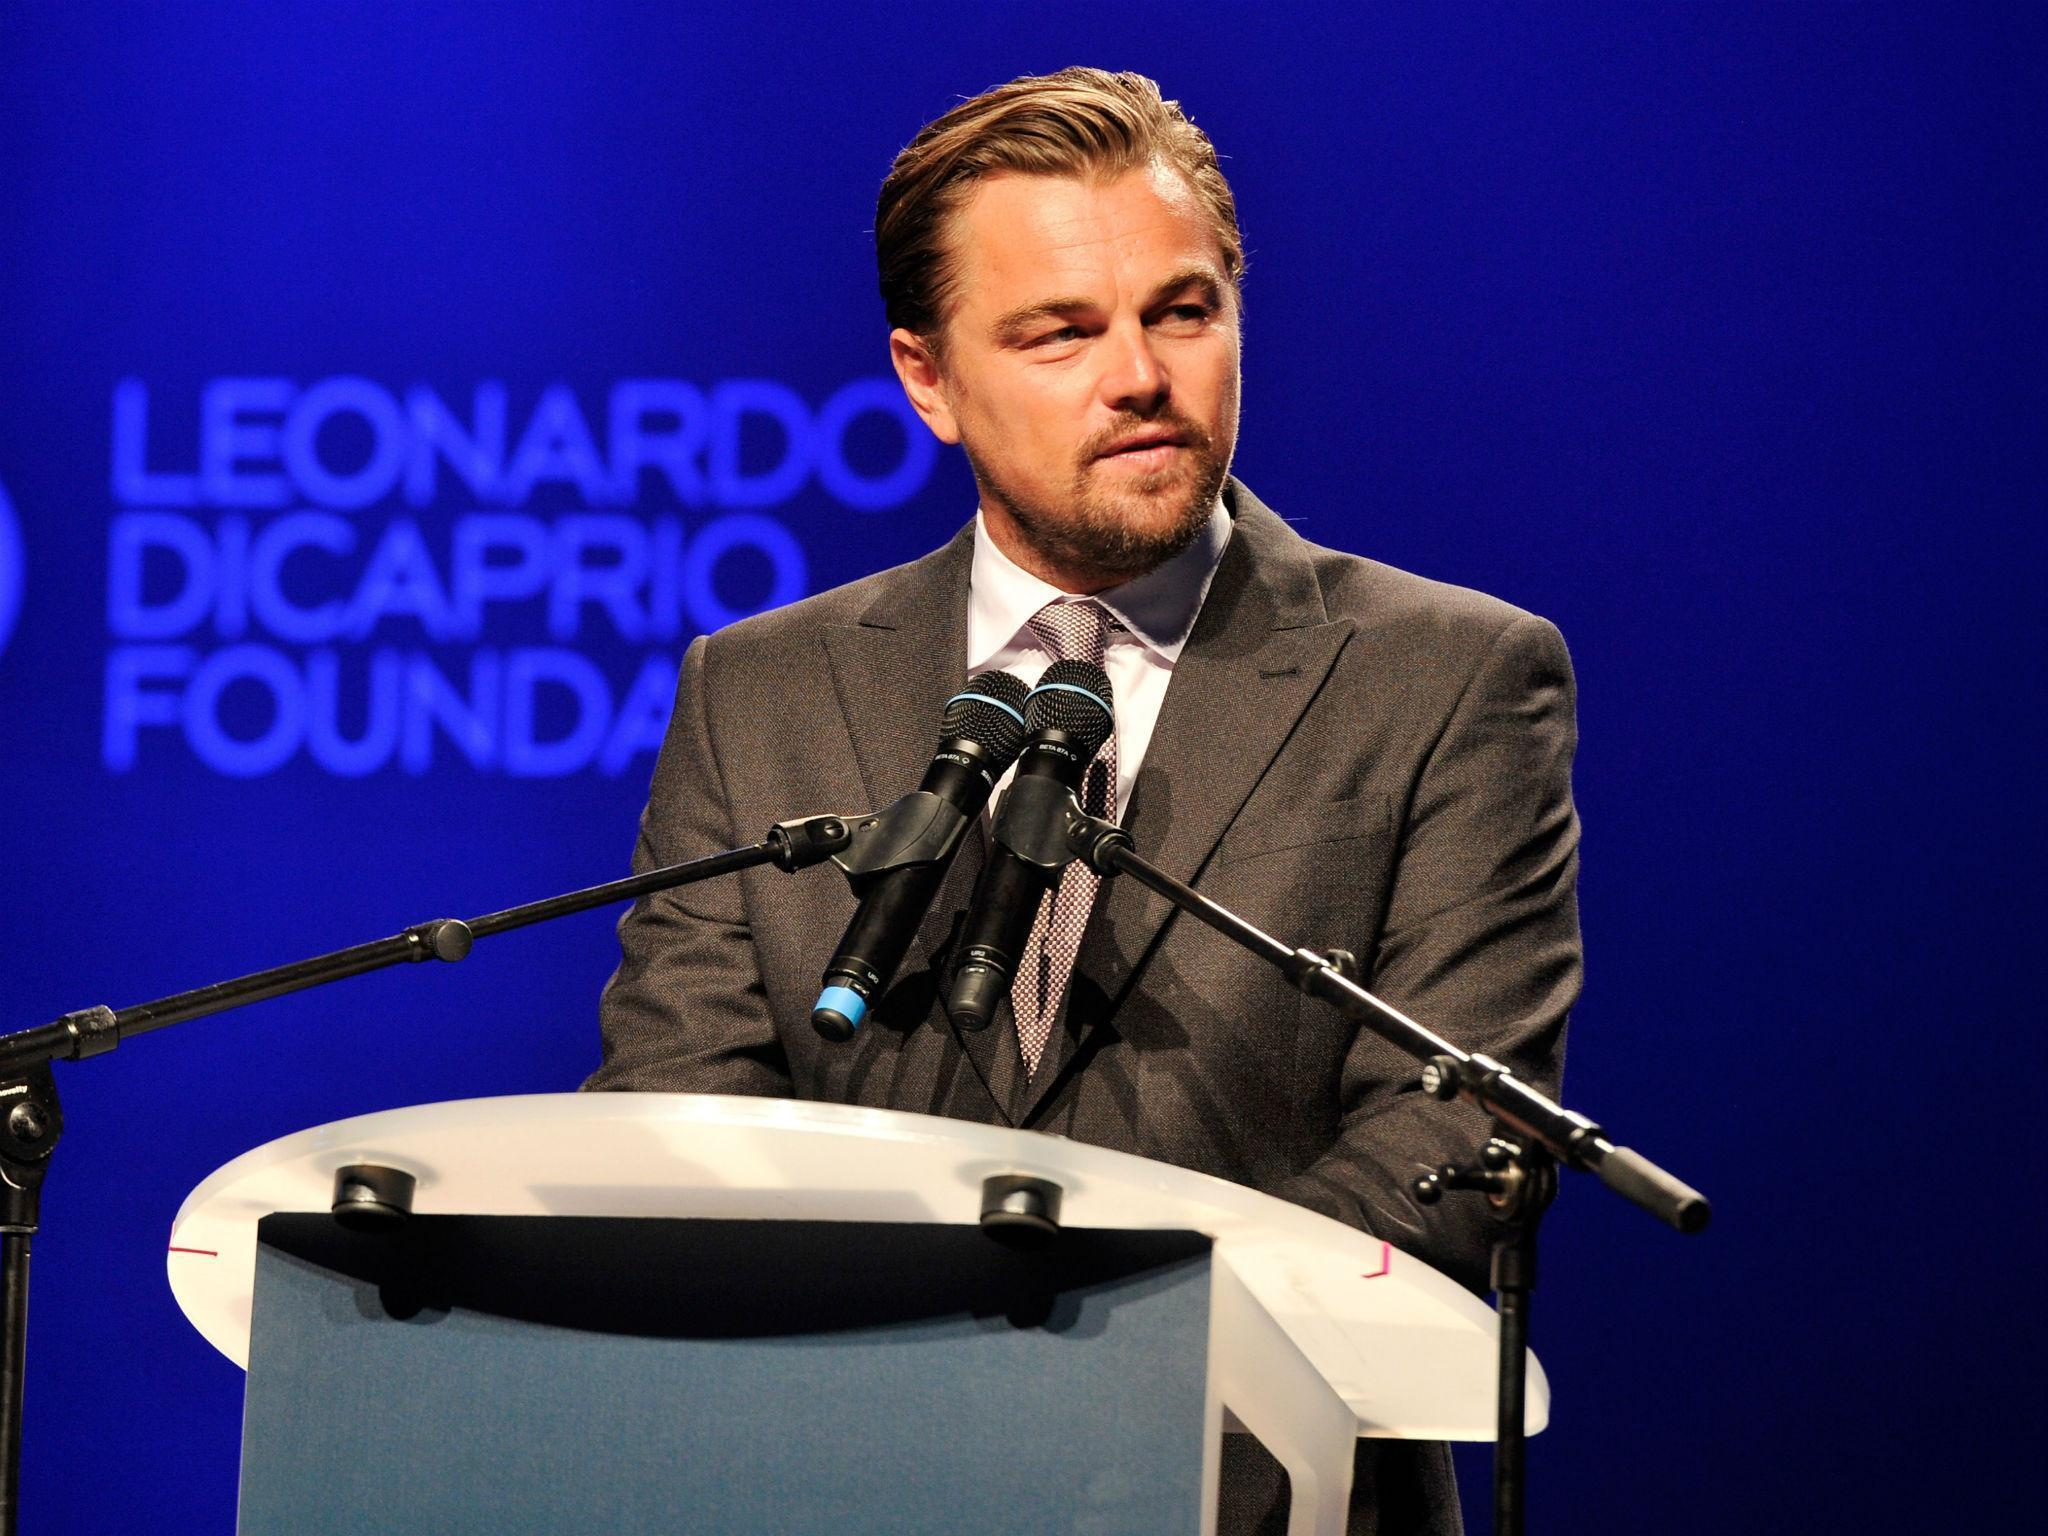 Leonardo DiCaprio's Oscar speech spiked climate change searches and discussions on social media, study finds